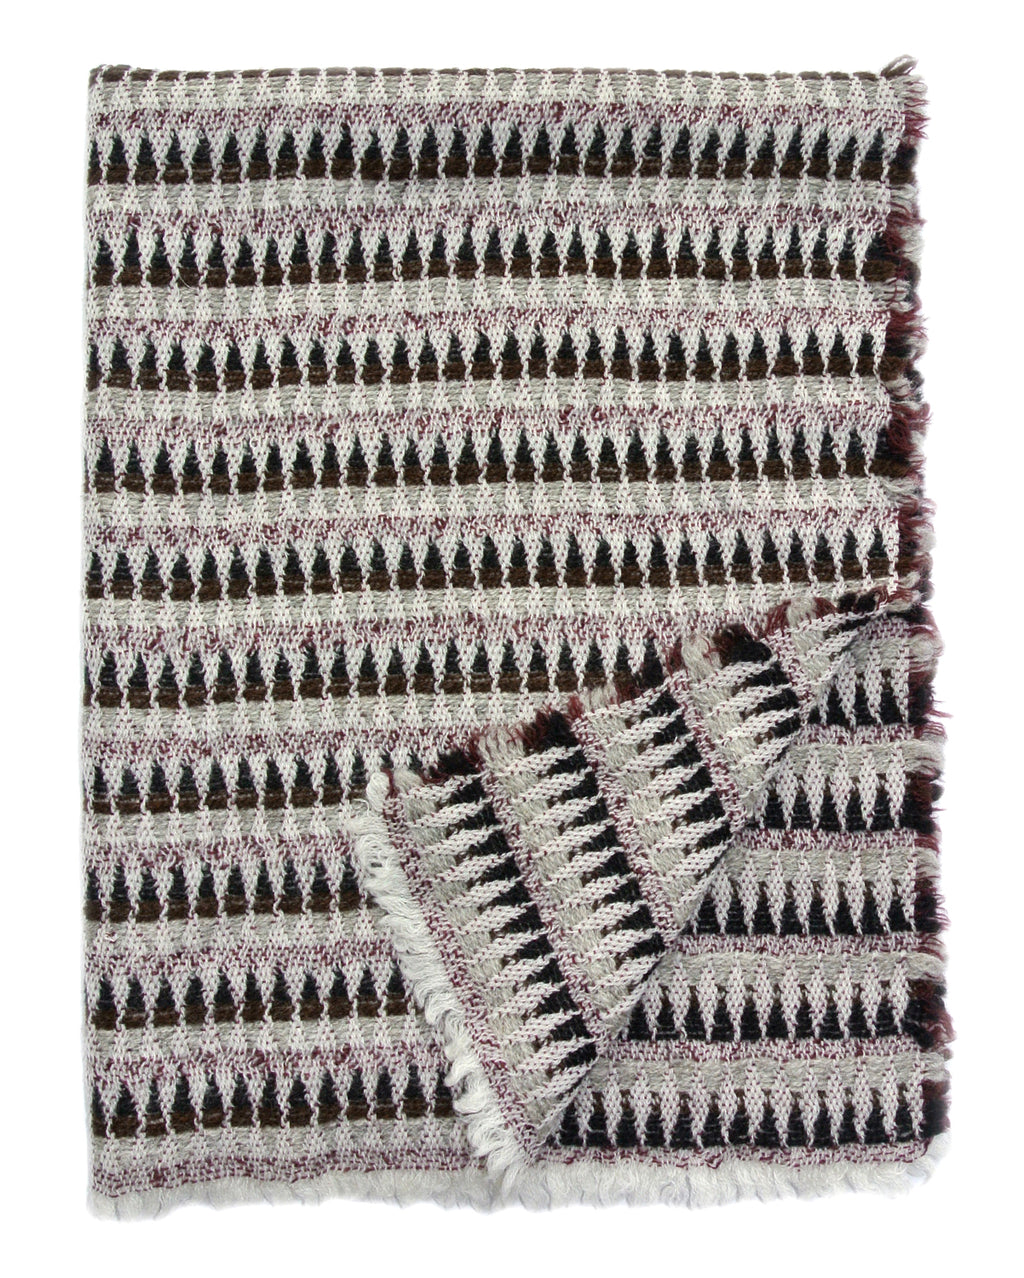 100% Woolen Baby Blanket 'Harlequin gray, brown', 67 х 88 cm, by Kelpman Textile, Estonia